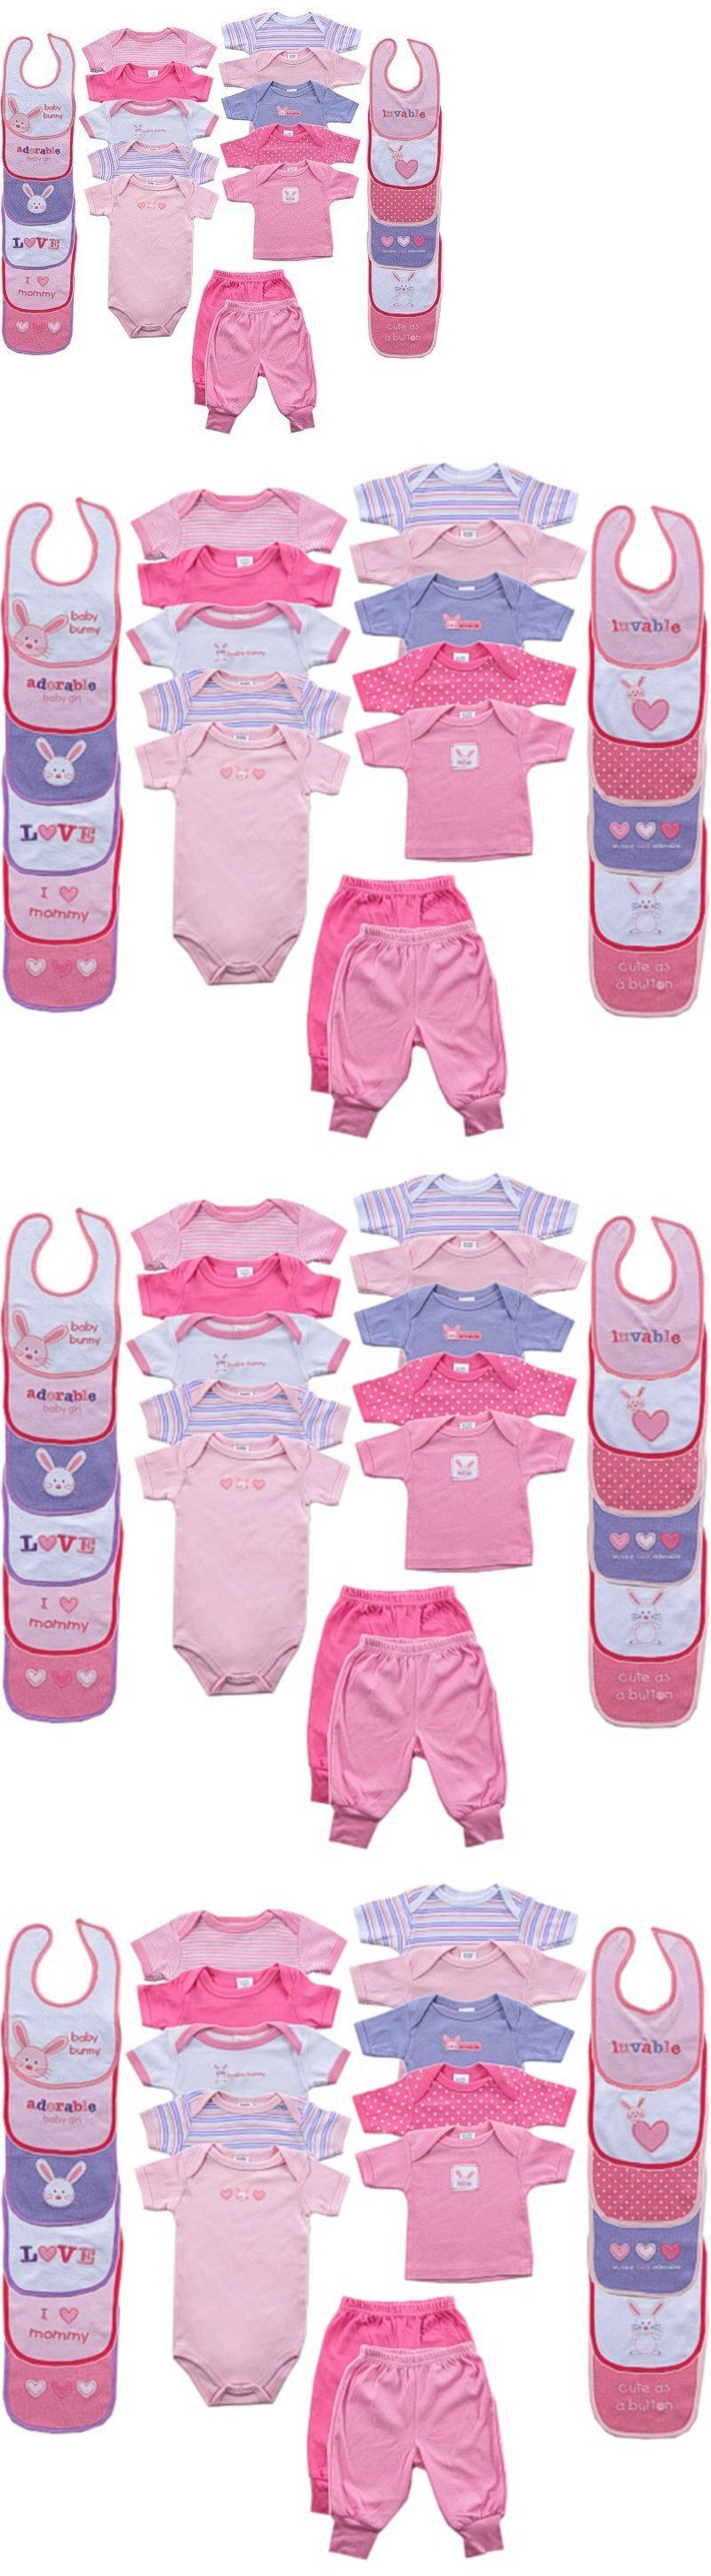 Outfits and Sets Set Gift 24 Pcs Pink Newborn 0 3 Baby Girl